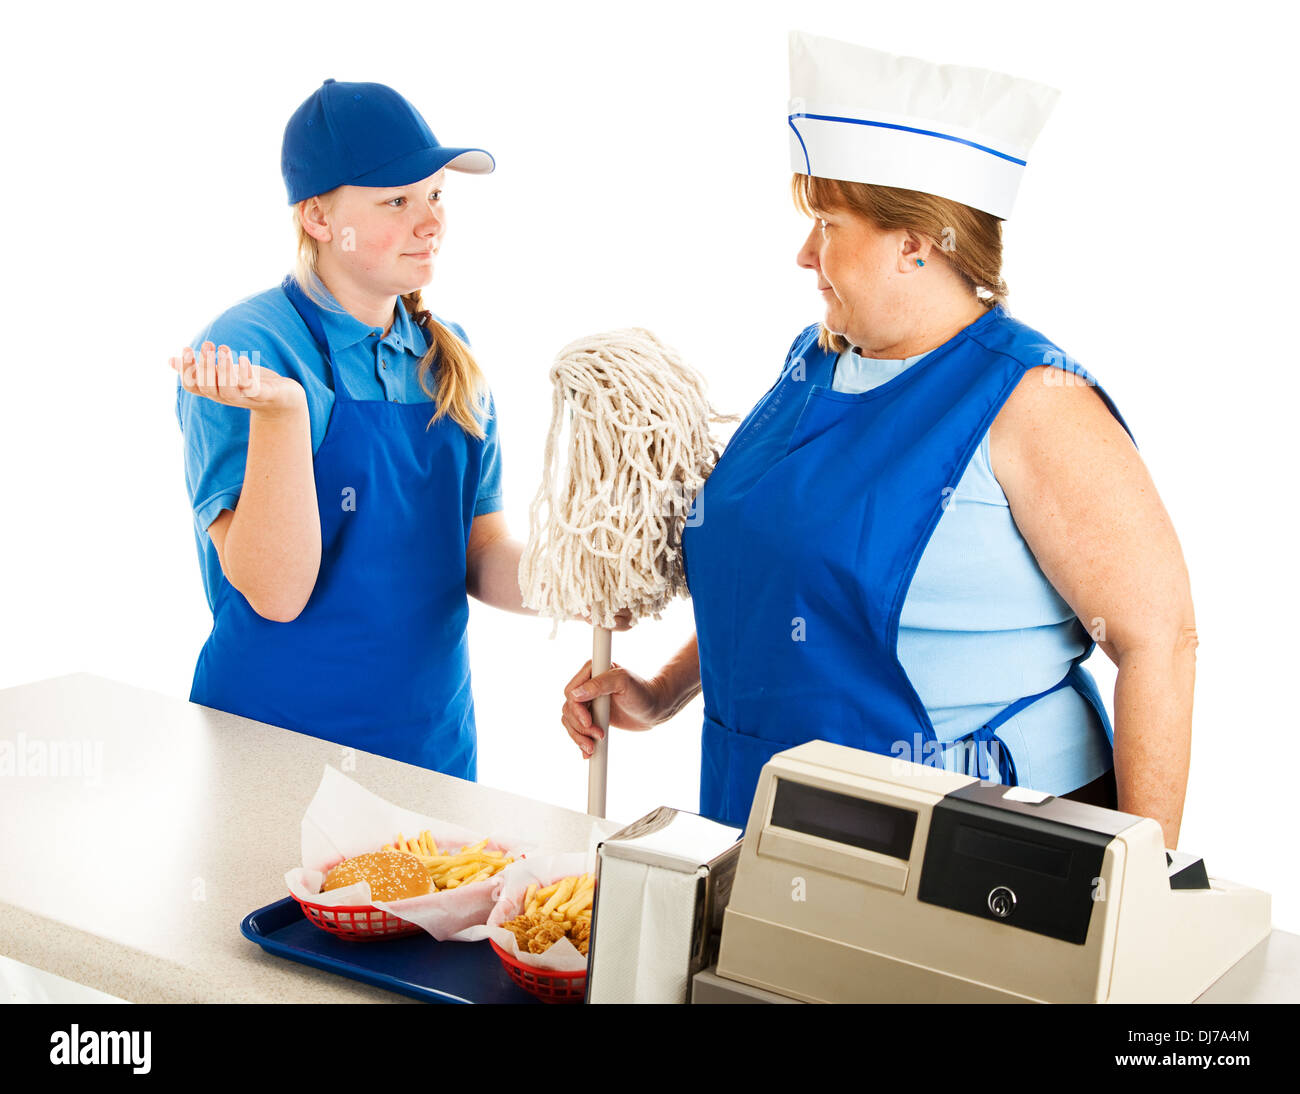 adult w working at a fast food job has to take orders from a adult w working at a fast food job has to take orders from a teenage boss isolated on white